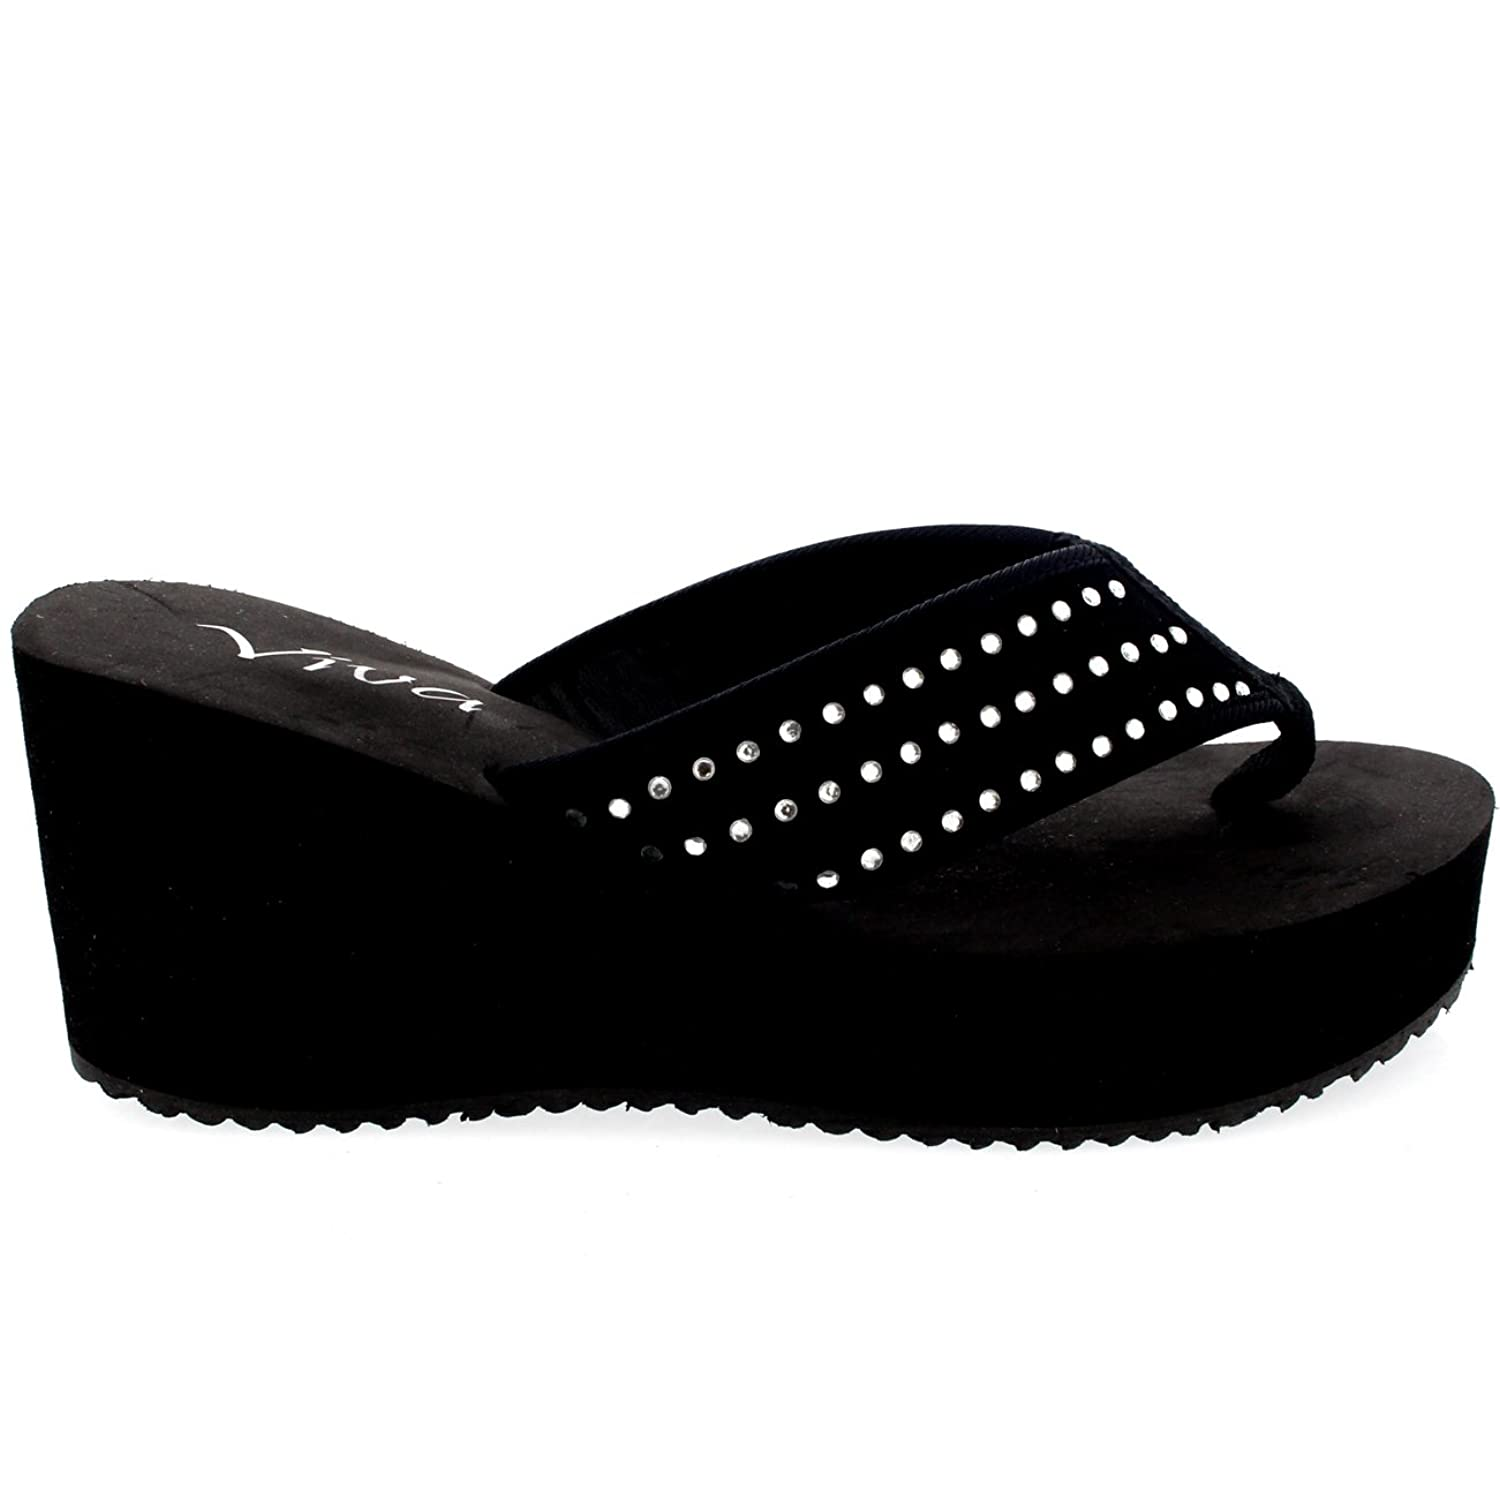 Womens Wedges Holiday Platform Diamante Summer Flip Flop High Heel Sandal -  Black - 9 - 42 - CD0187: Amazon.co.uk: Shoes & Bags